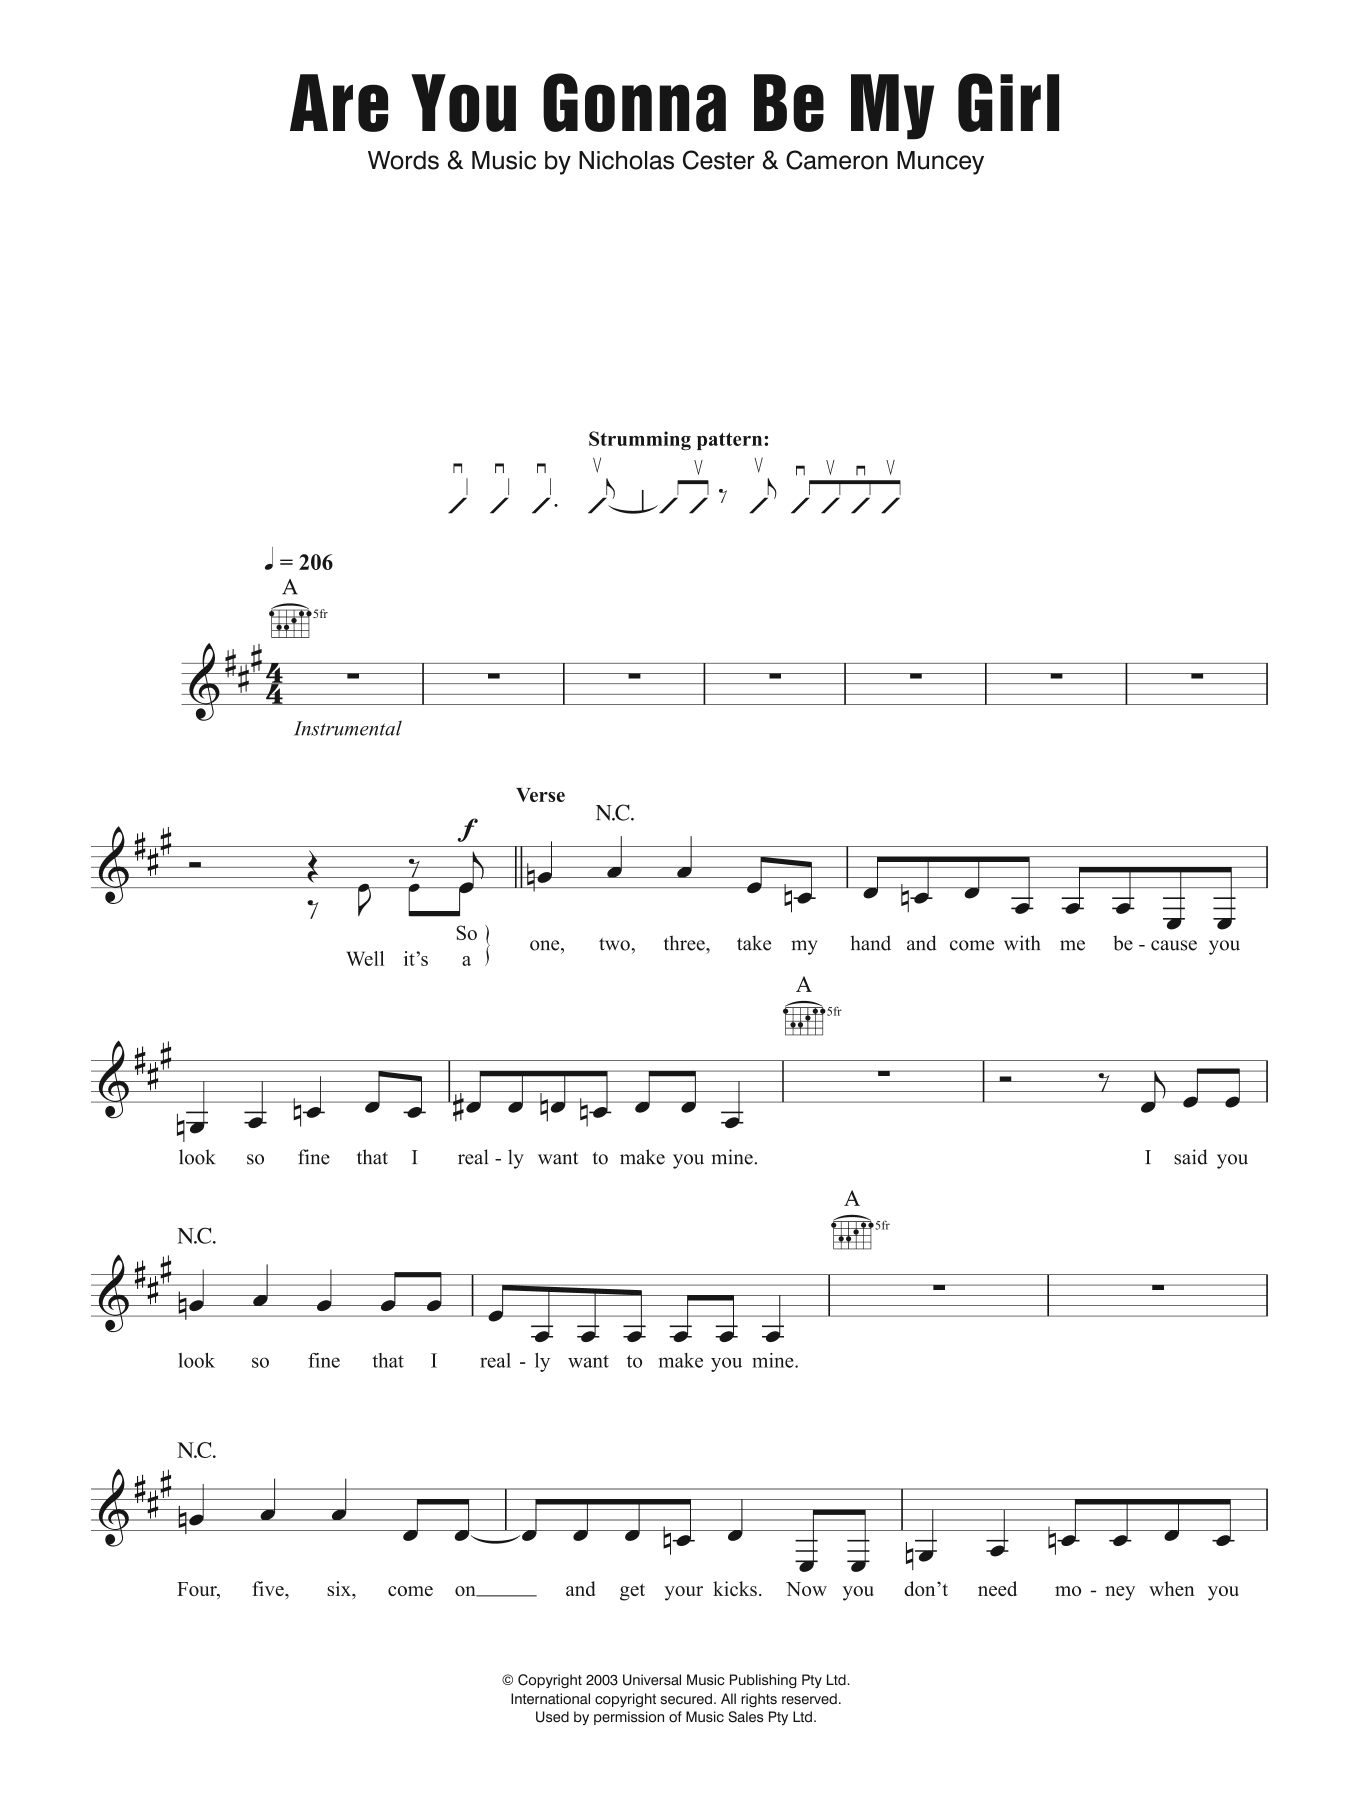 My Girl Chords Are You Gonna Be My Girl Jet Guitar Tab Single Guitar Digital Sheet Music